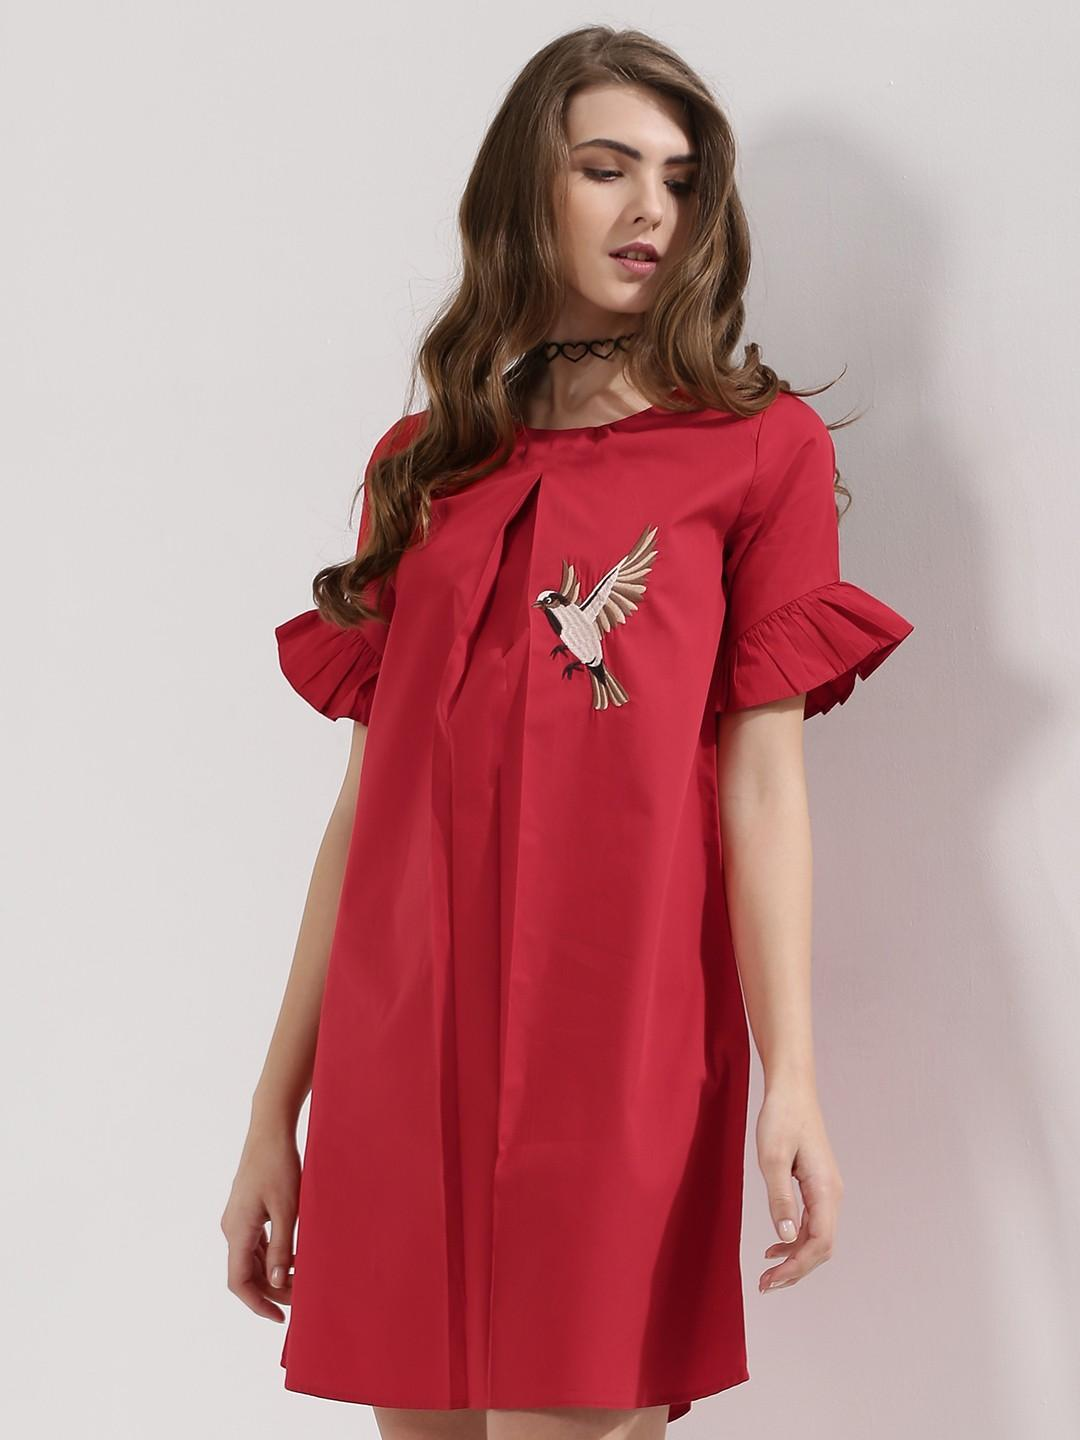 3734ebb3d3 Red Embroidered Dress - SeenIt